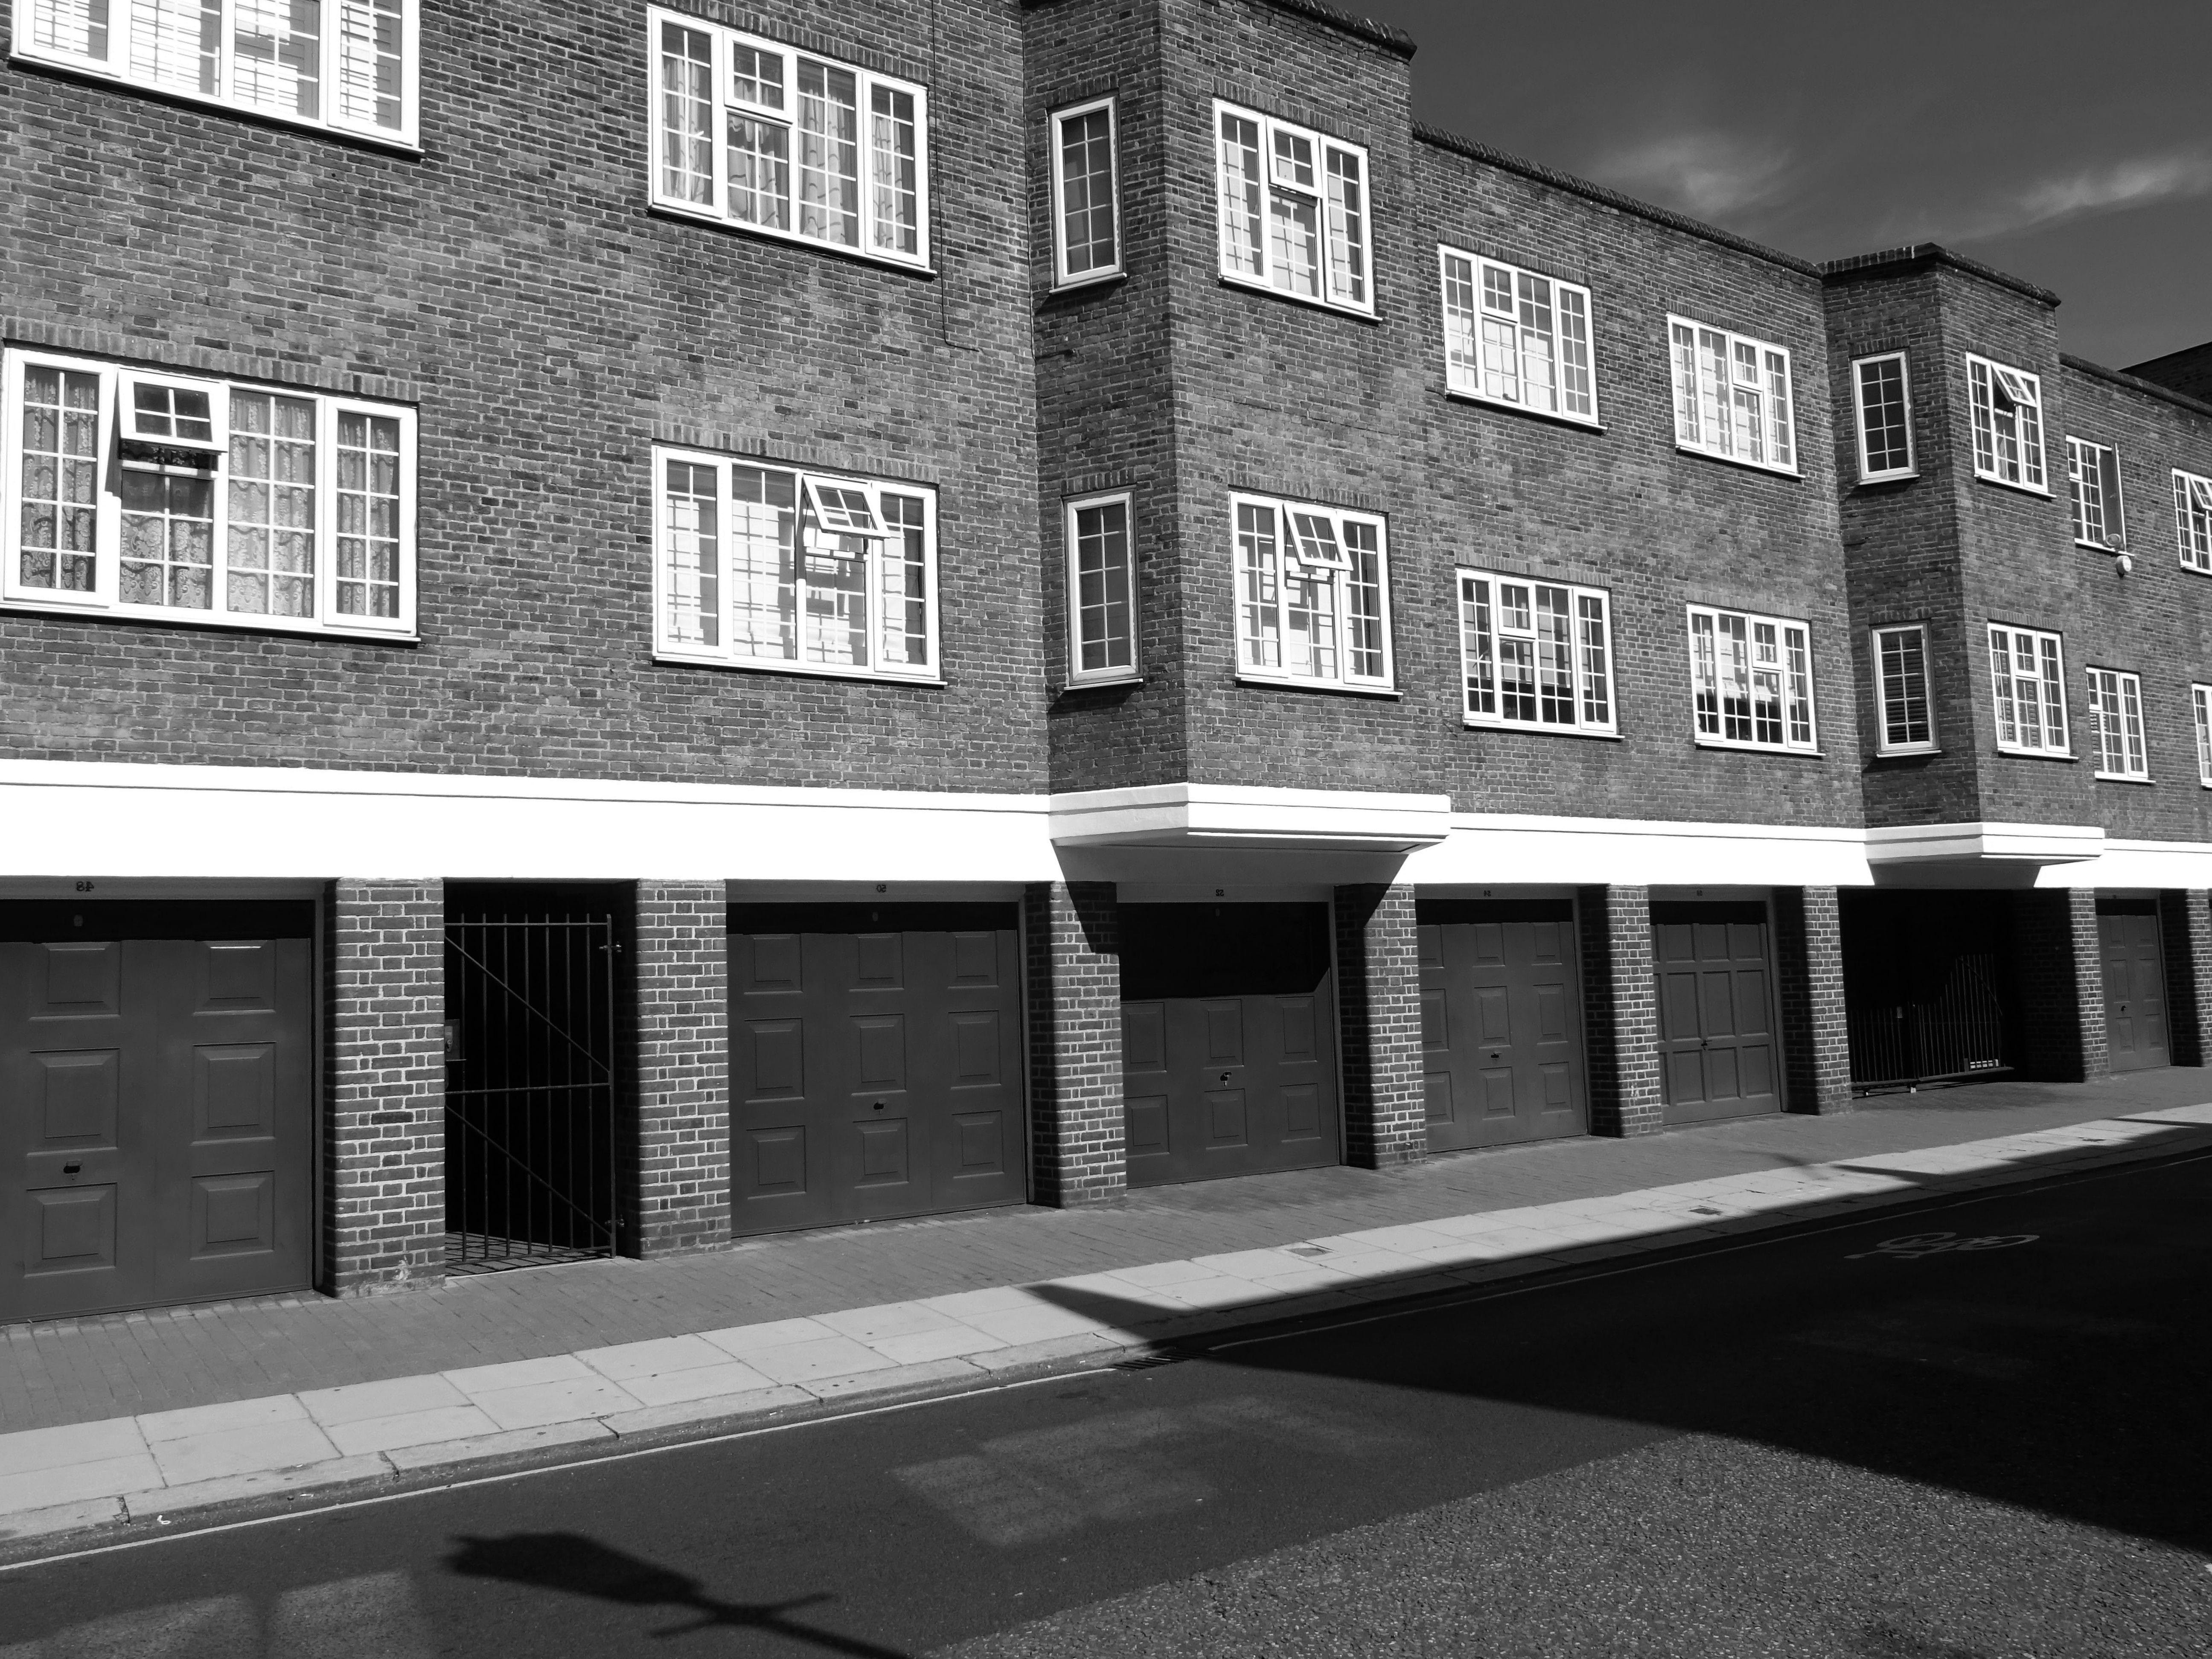 Grayscale Photo of 2-storey Building